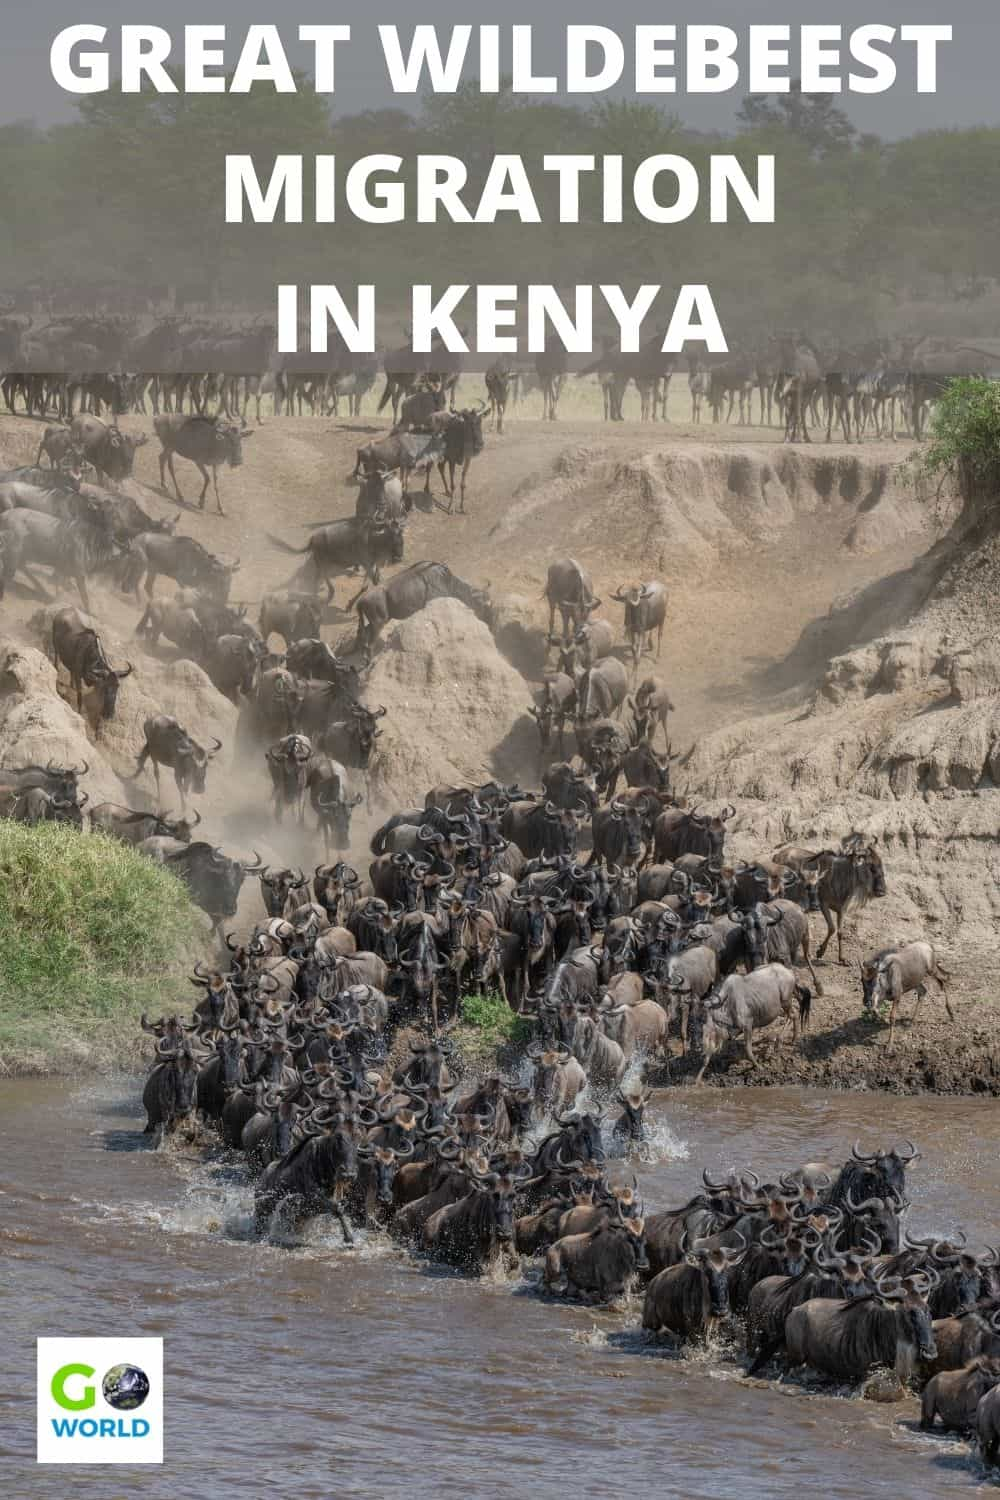 The wildebeest migration in Kenya is one of nature's wonders. It's mysterious, chaotic, deadly, inspiring & the greatest show in the world. #Africa #Kenya #wildebeestmigration